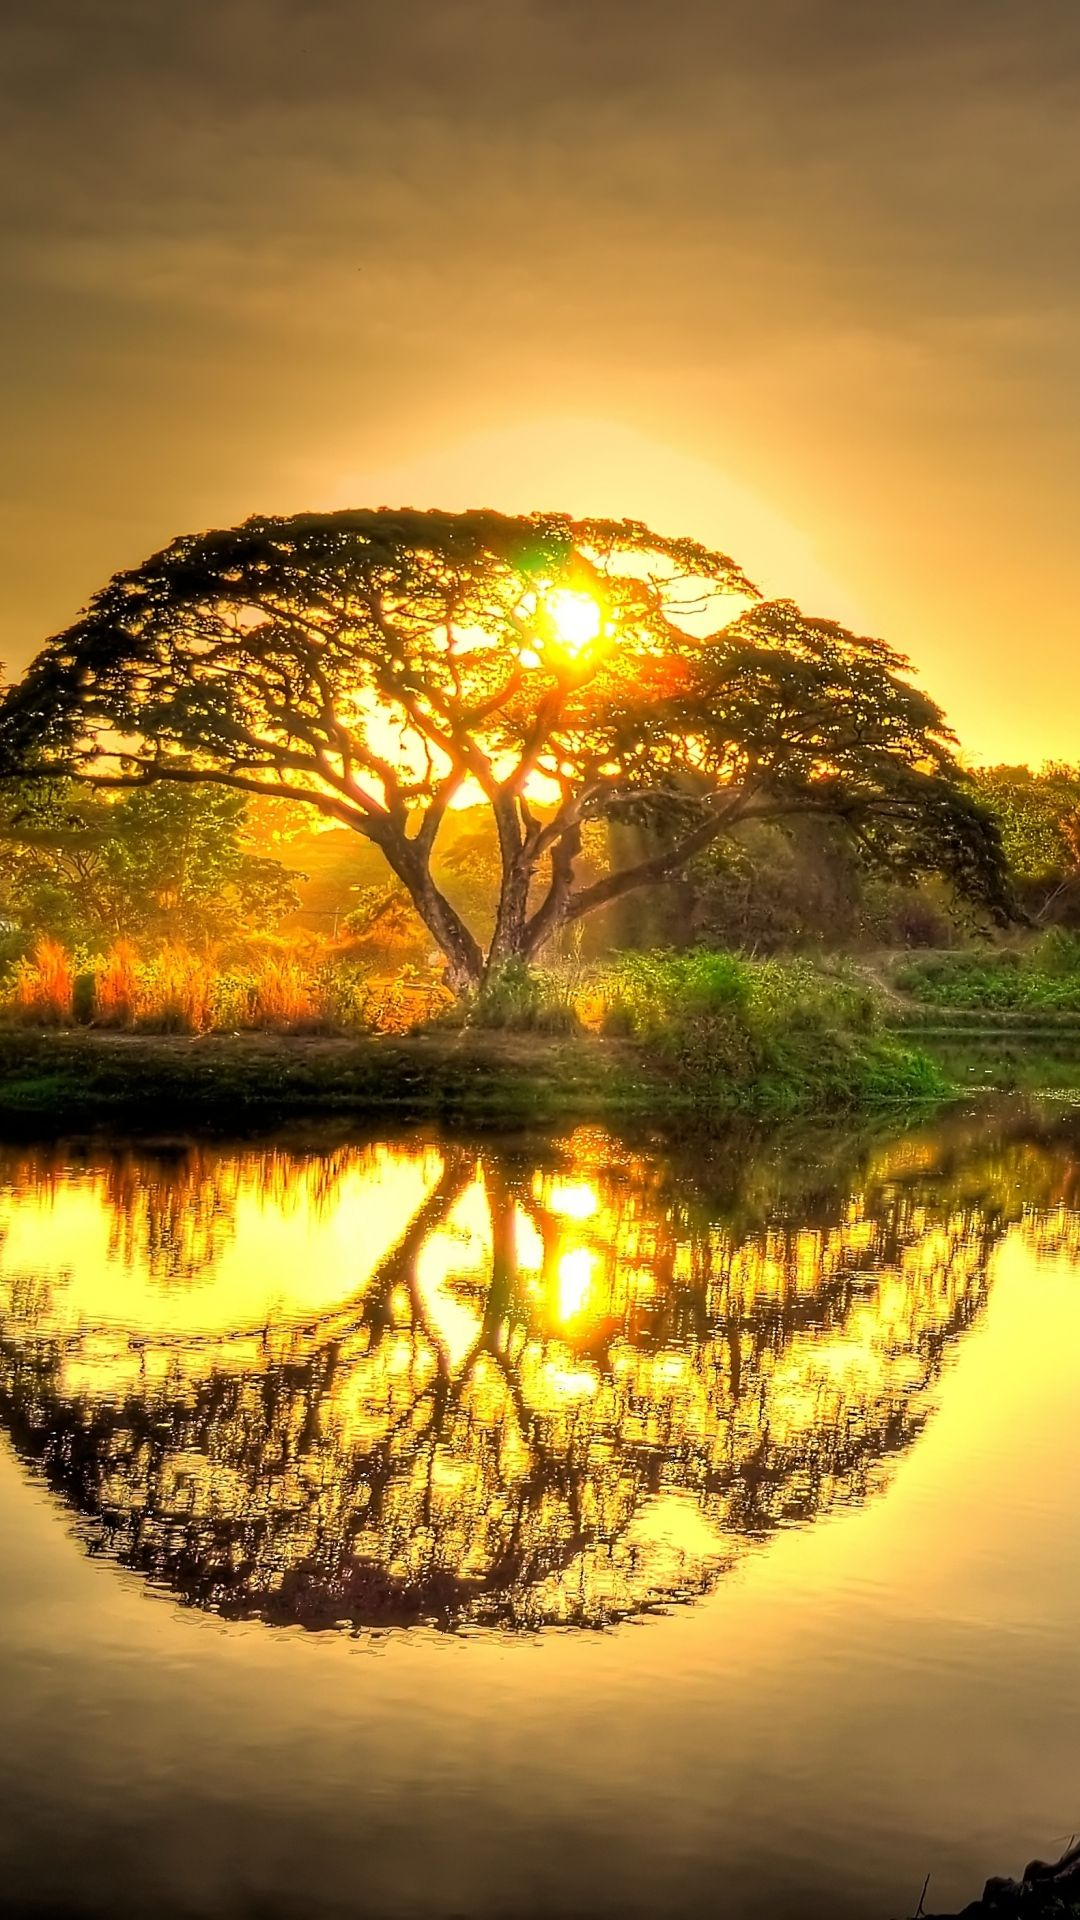 #Sunset pond with tree #reflection. http://wallpaperscraft ... Wallpaperscraft